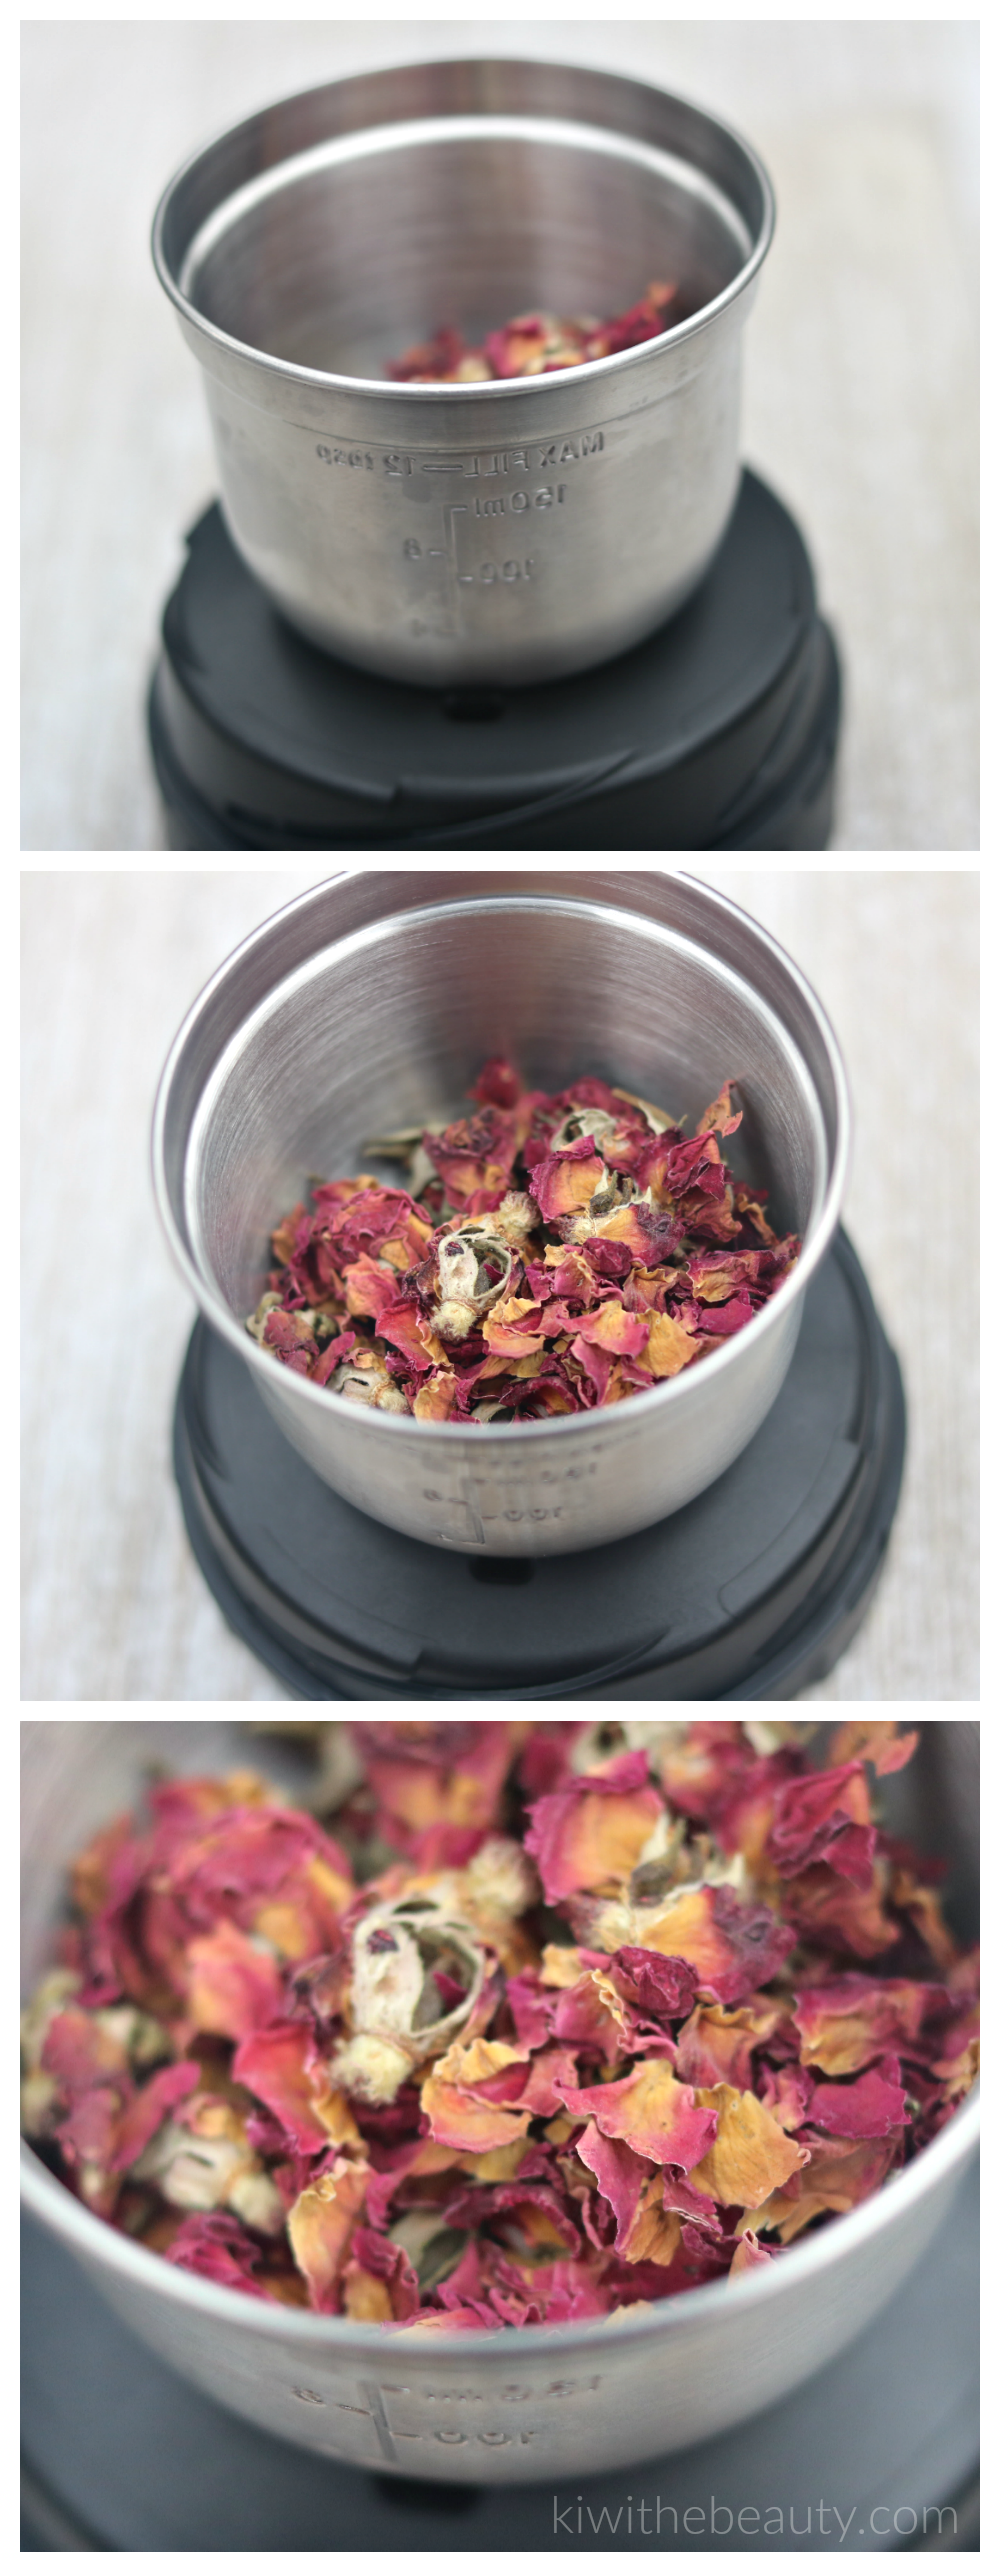 rose-lavender-diy-body-scrub-valentine-day-gift-idea-3